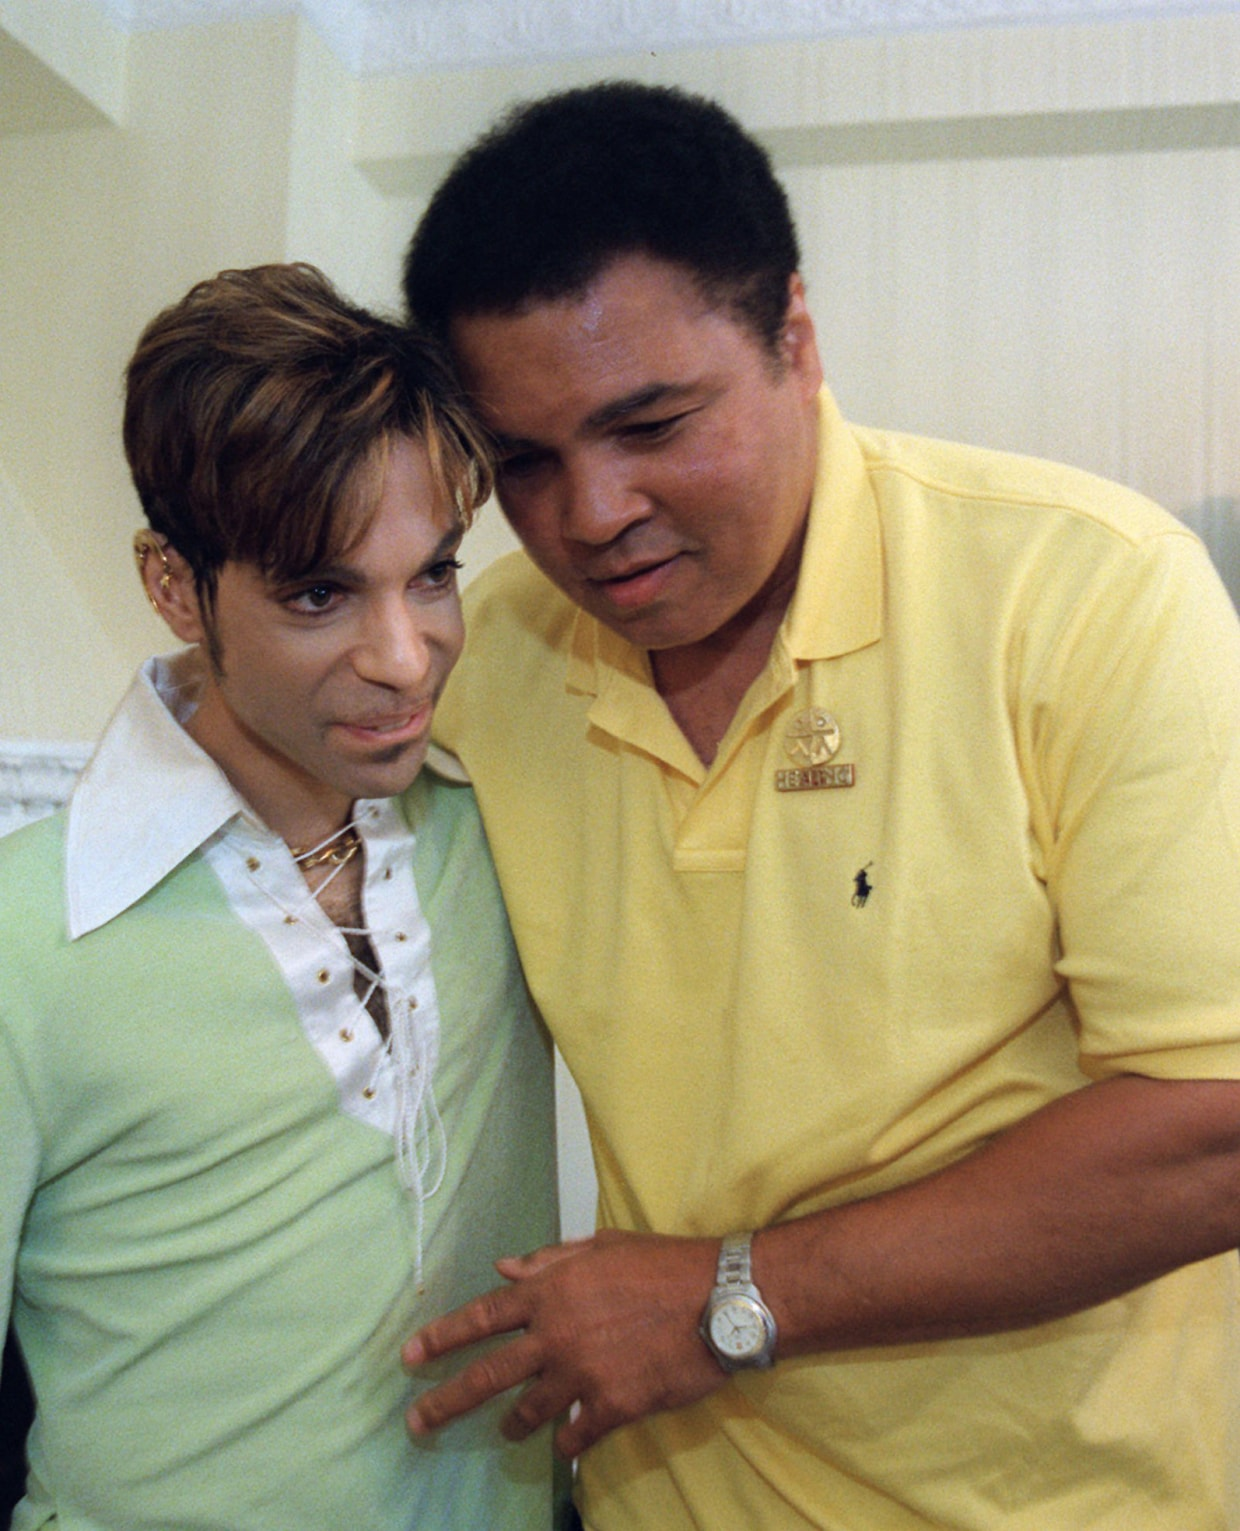 Essay: 'The Greatest' Losses: What Prince and Muhammad Ali Shared